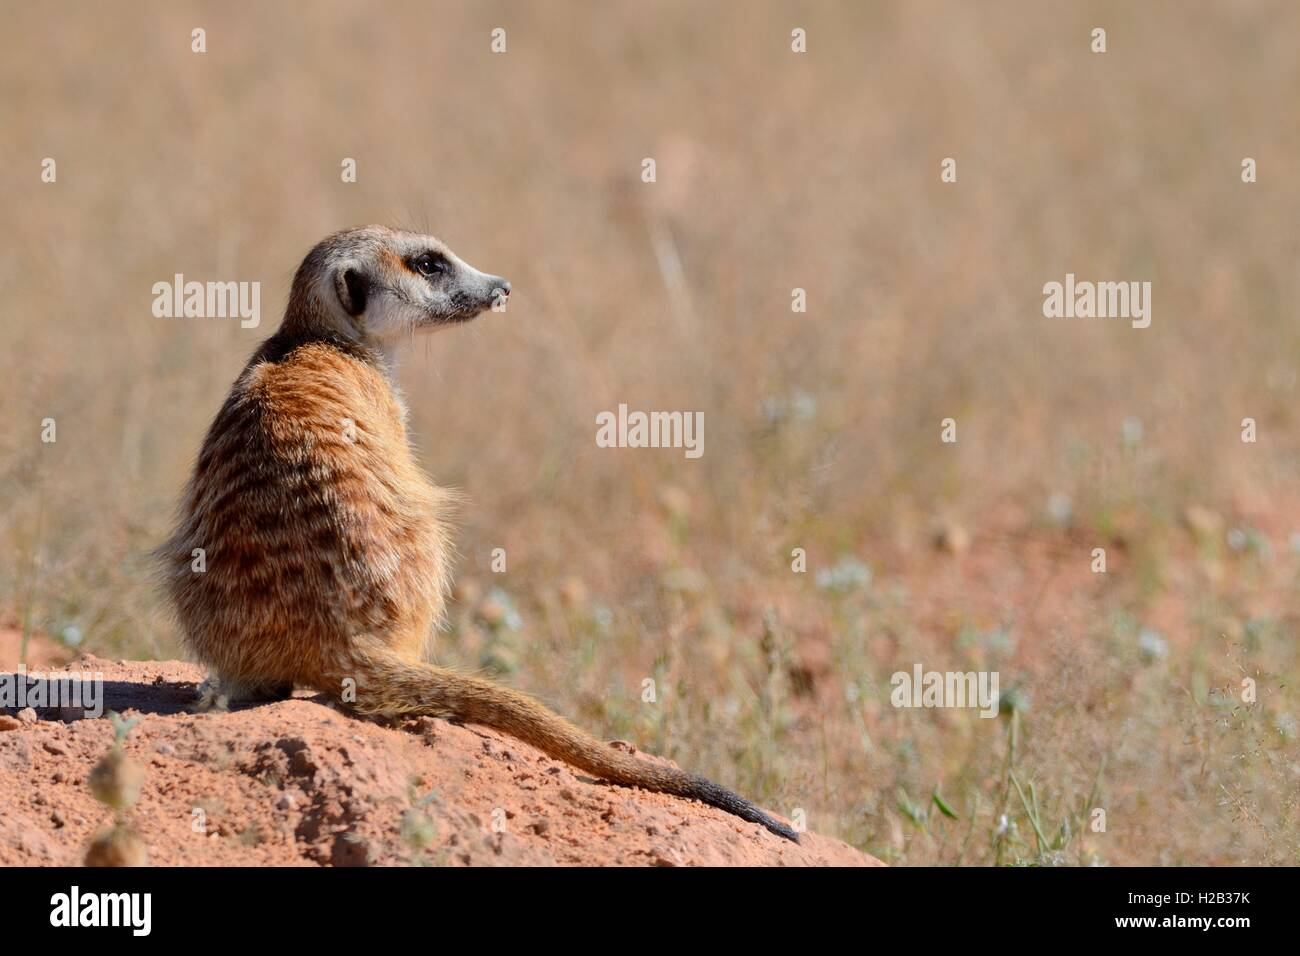 Meerkat (Suricata suricatta), adult sitting on a sandy mound, attentive, Kgalagadi Transfrontier Park,Northern Cape,South - Stock Image